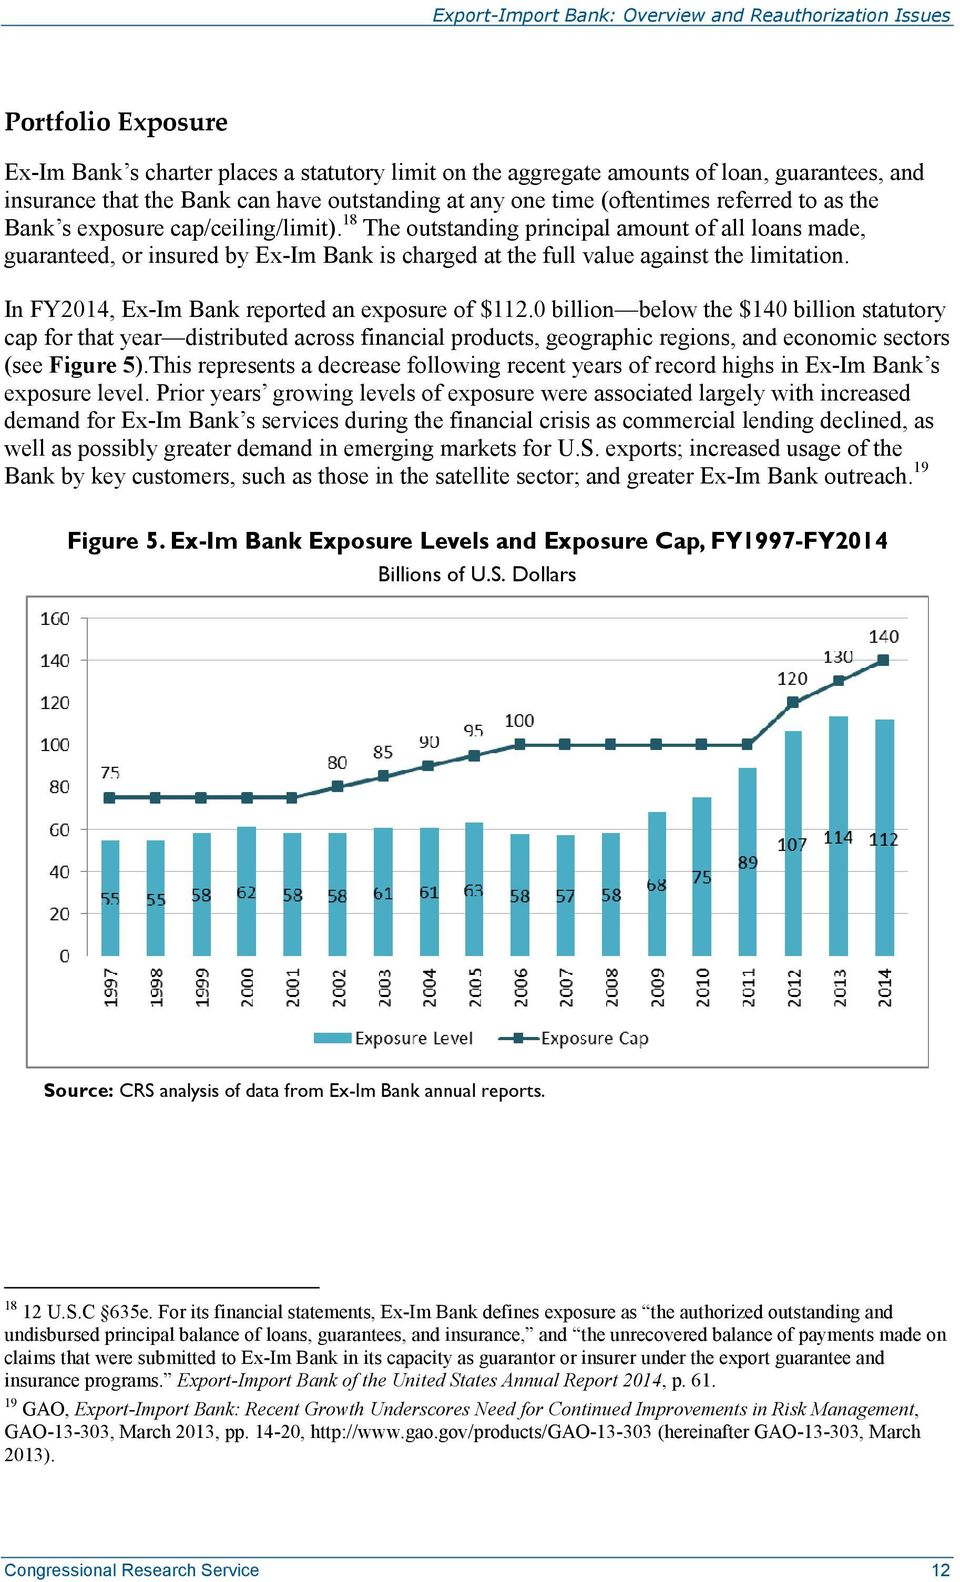 In FY2014, Ex-Im Bank reported an exposure of $112.